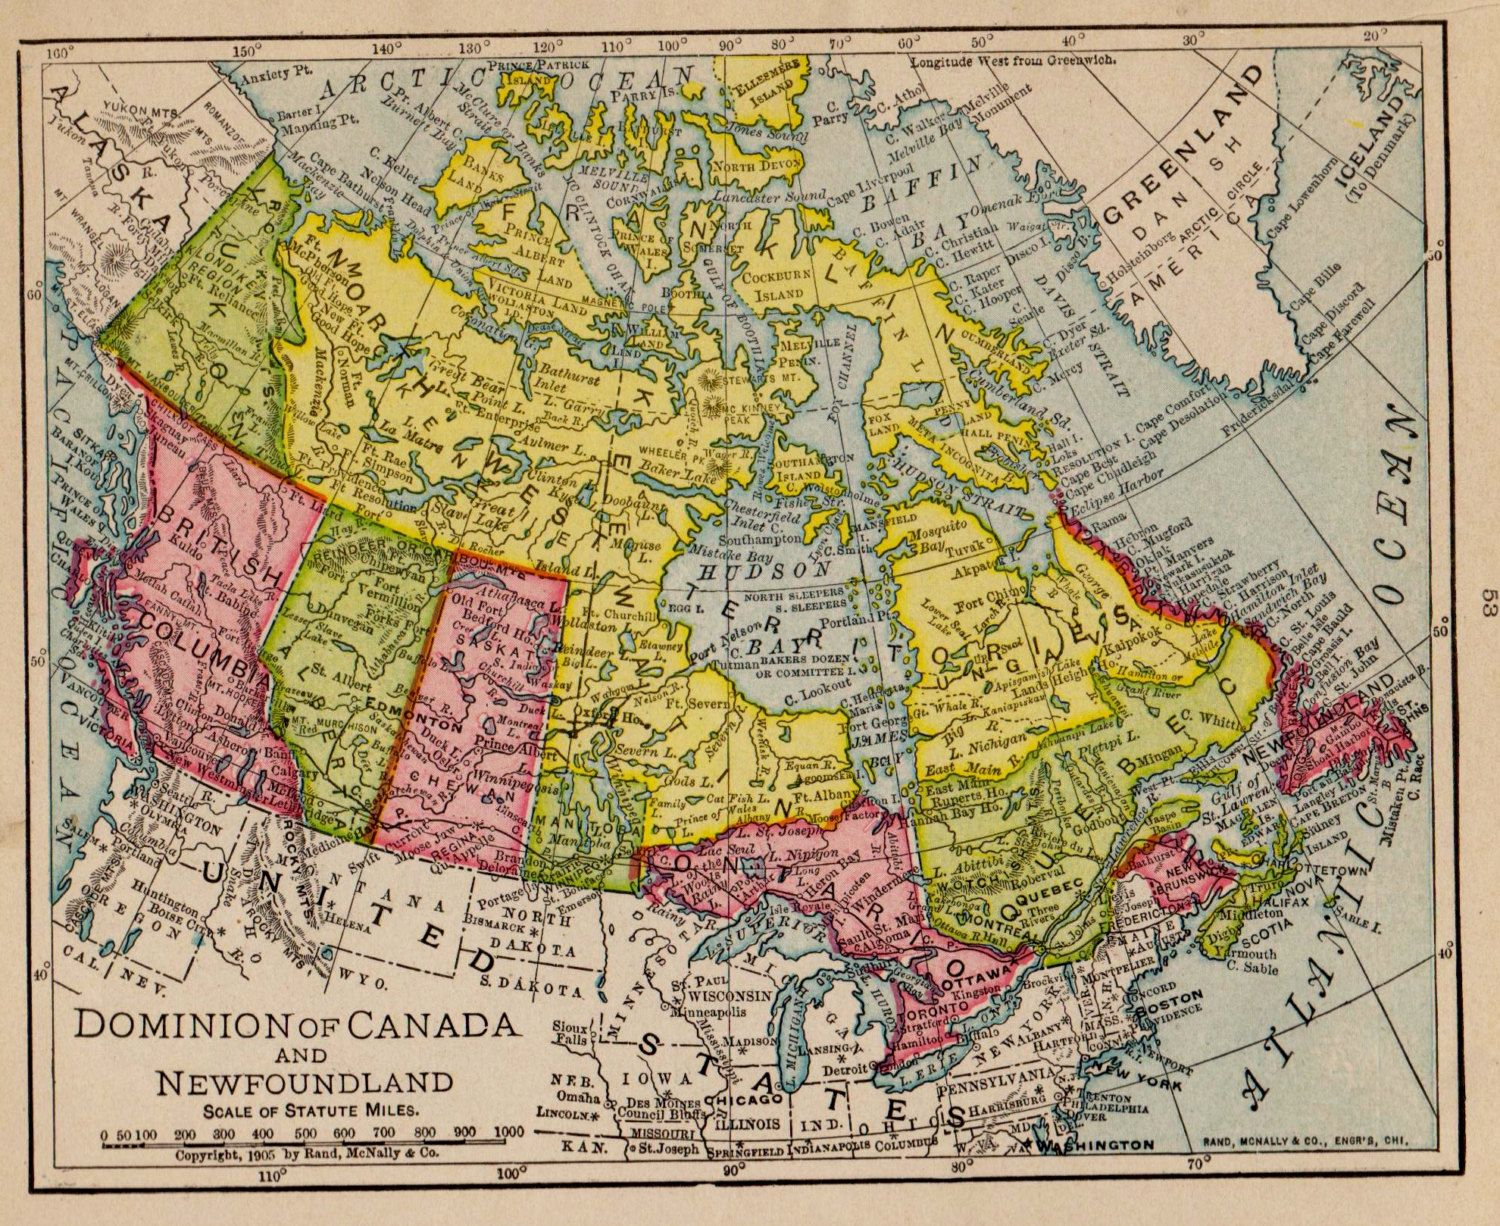 Antique CANADA Map Pretty 1908 Vintage Map of Canada Gallery Wall     Antique CANADA Map Pretty 1908 Small Map of Canada Gallery Wall Art Library  Decor HAW 6790